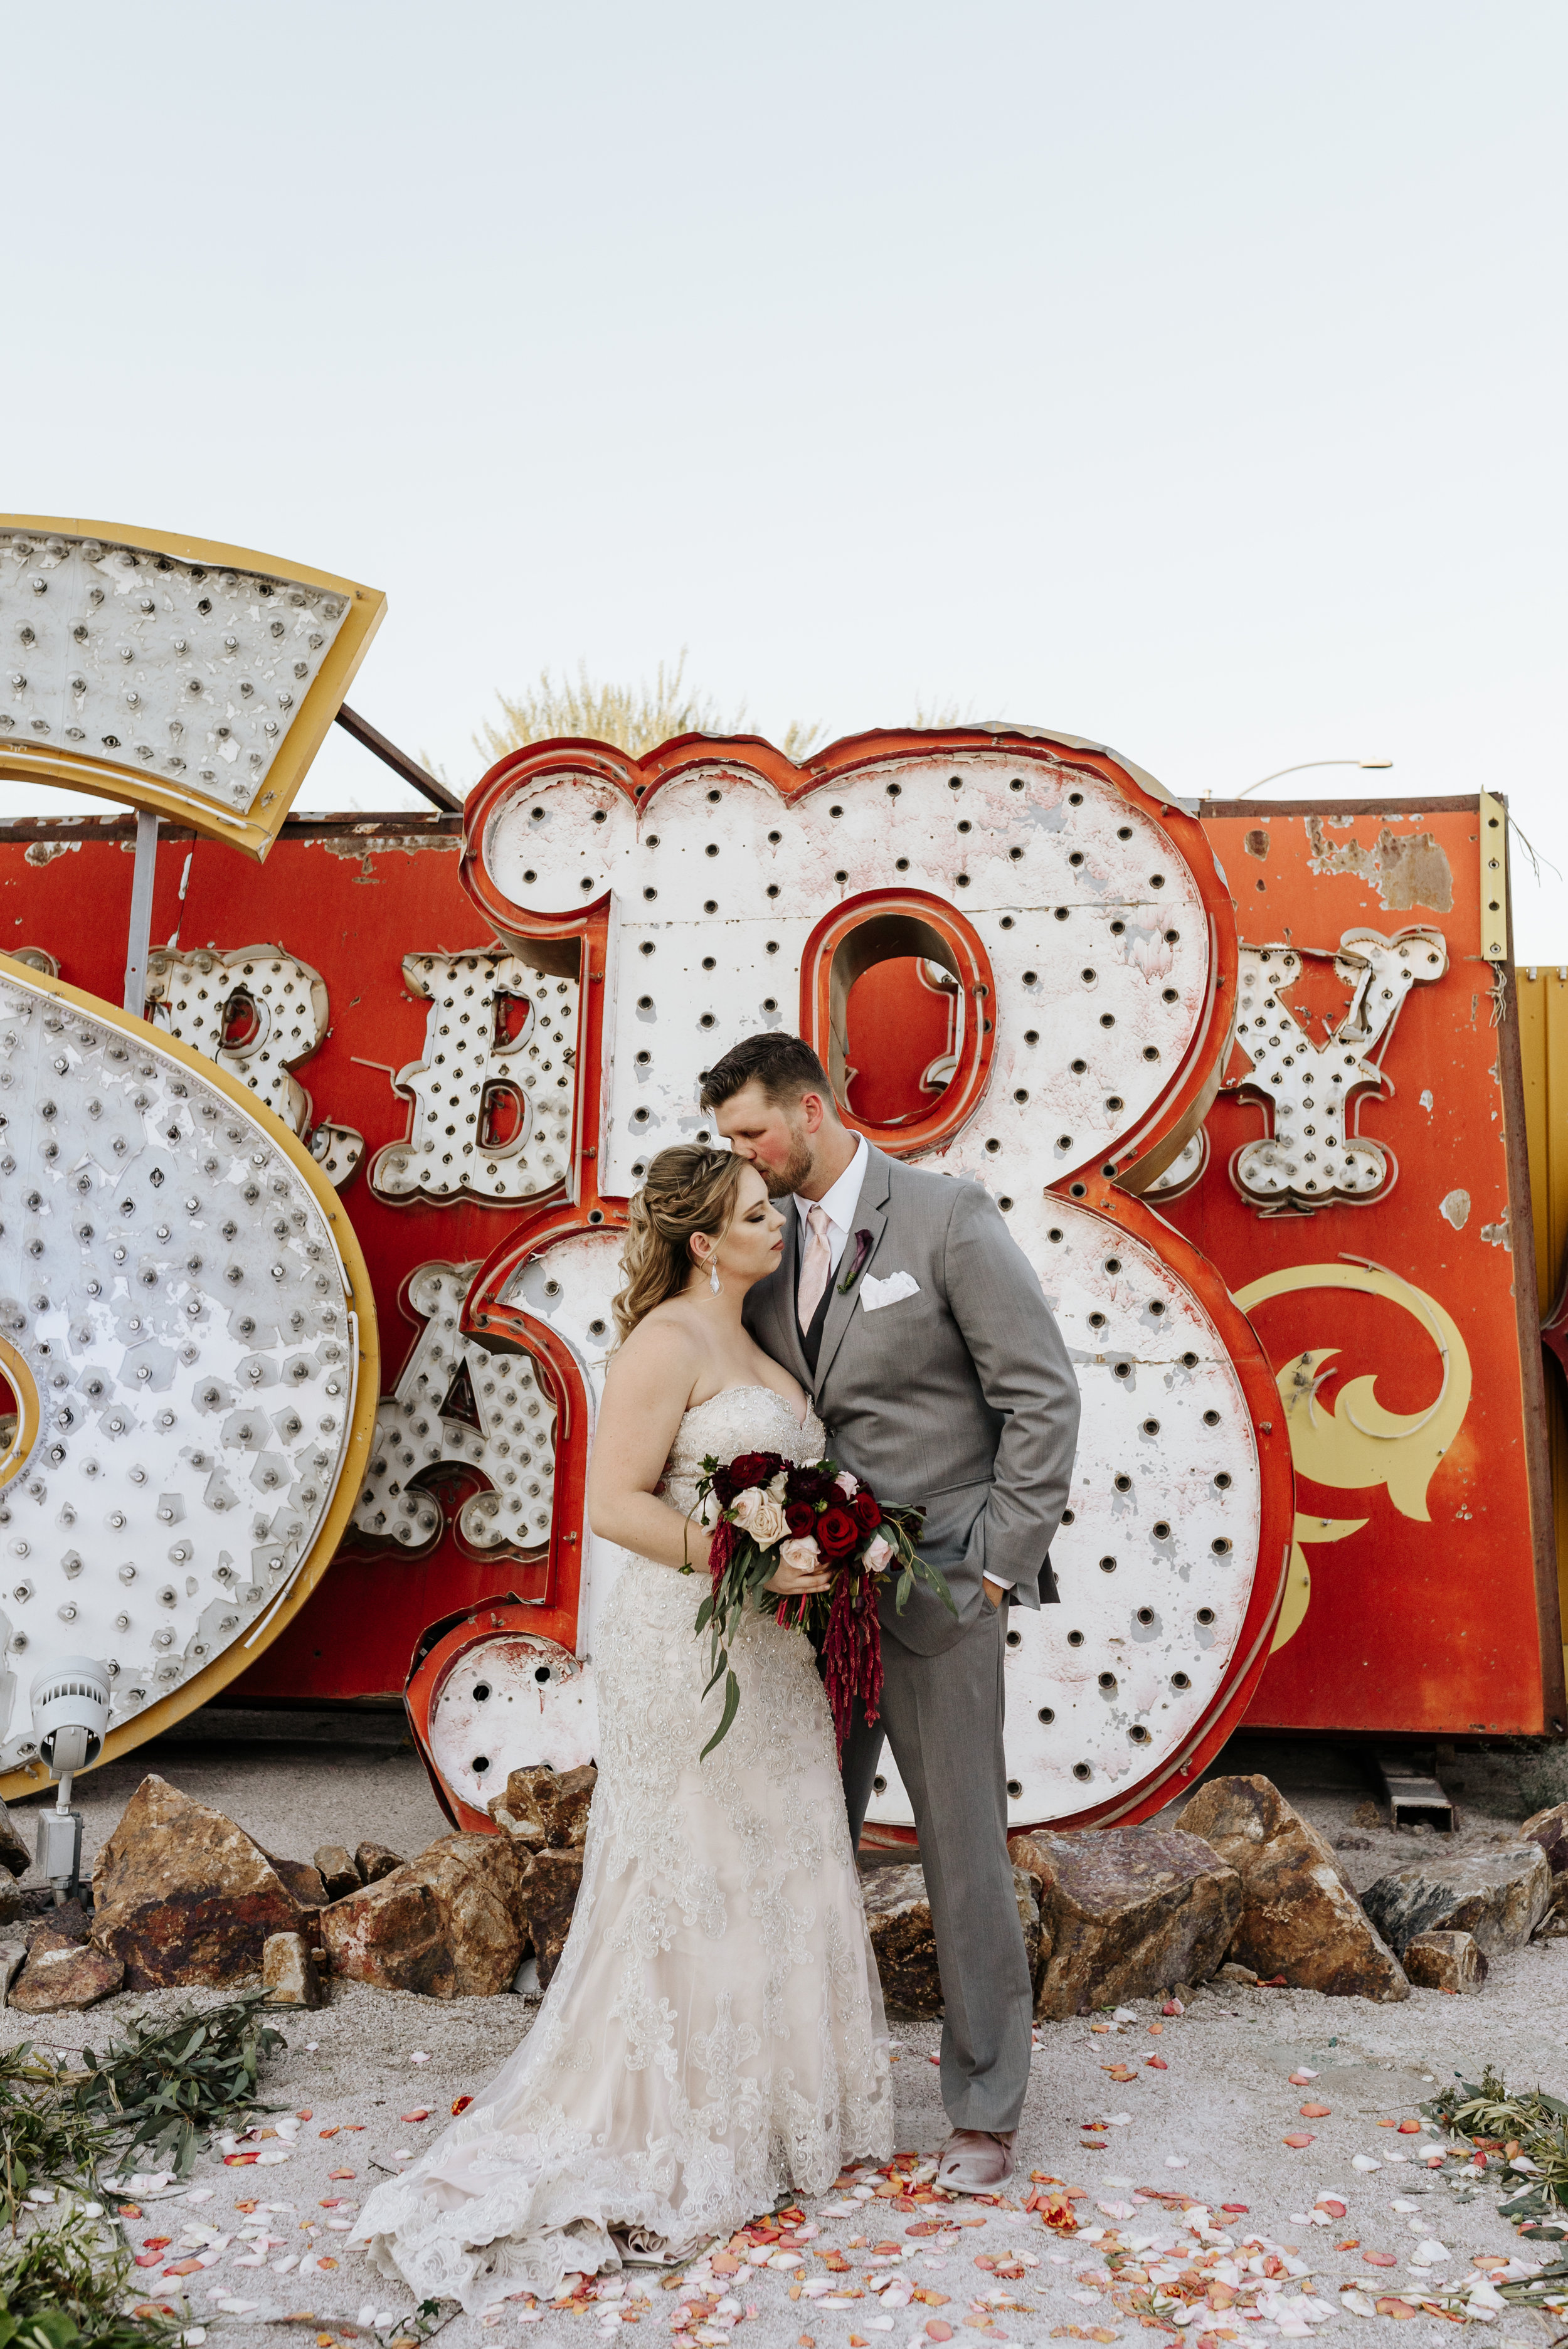 Neon-Museum-Wedding-Las-Vegas-Nevada-Golden-Nugget-Photography-by-V-Ally-and-Dan-3206.jpg